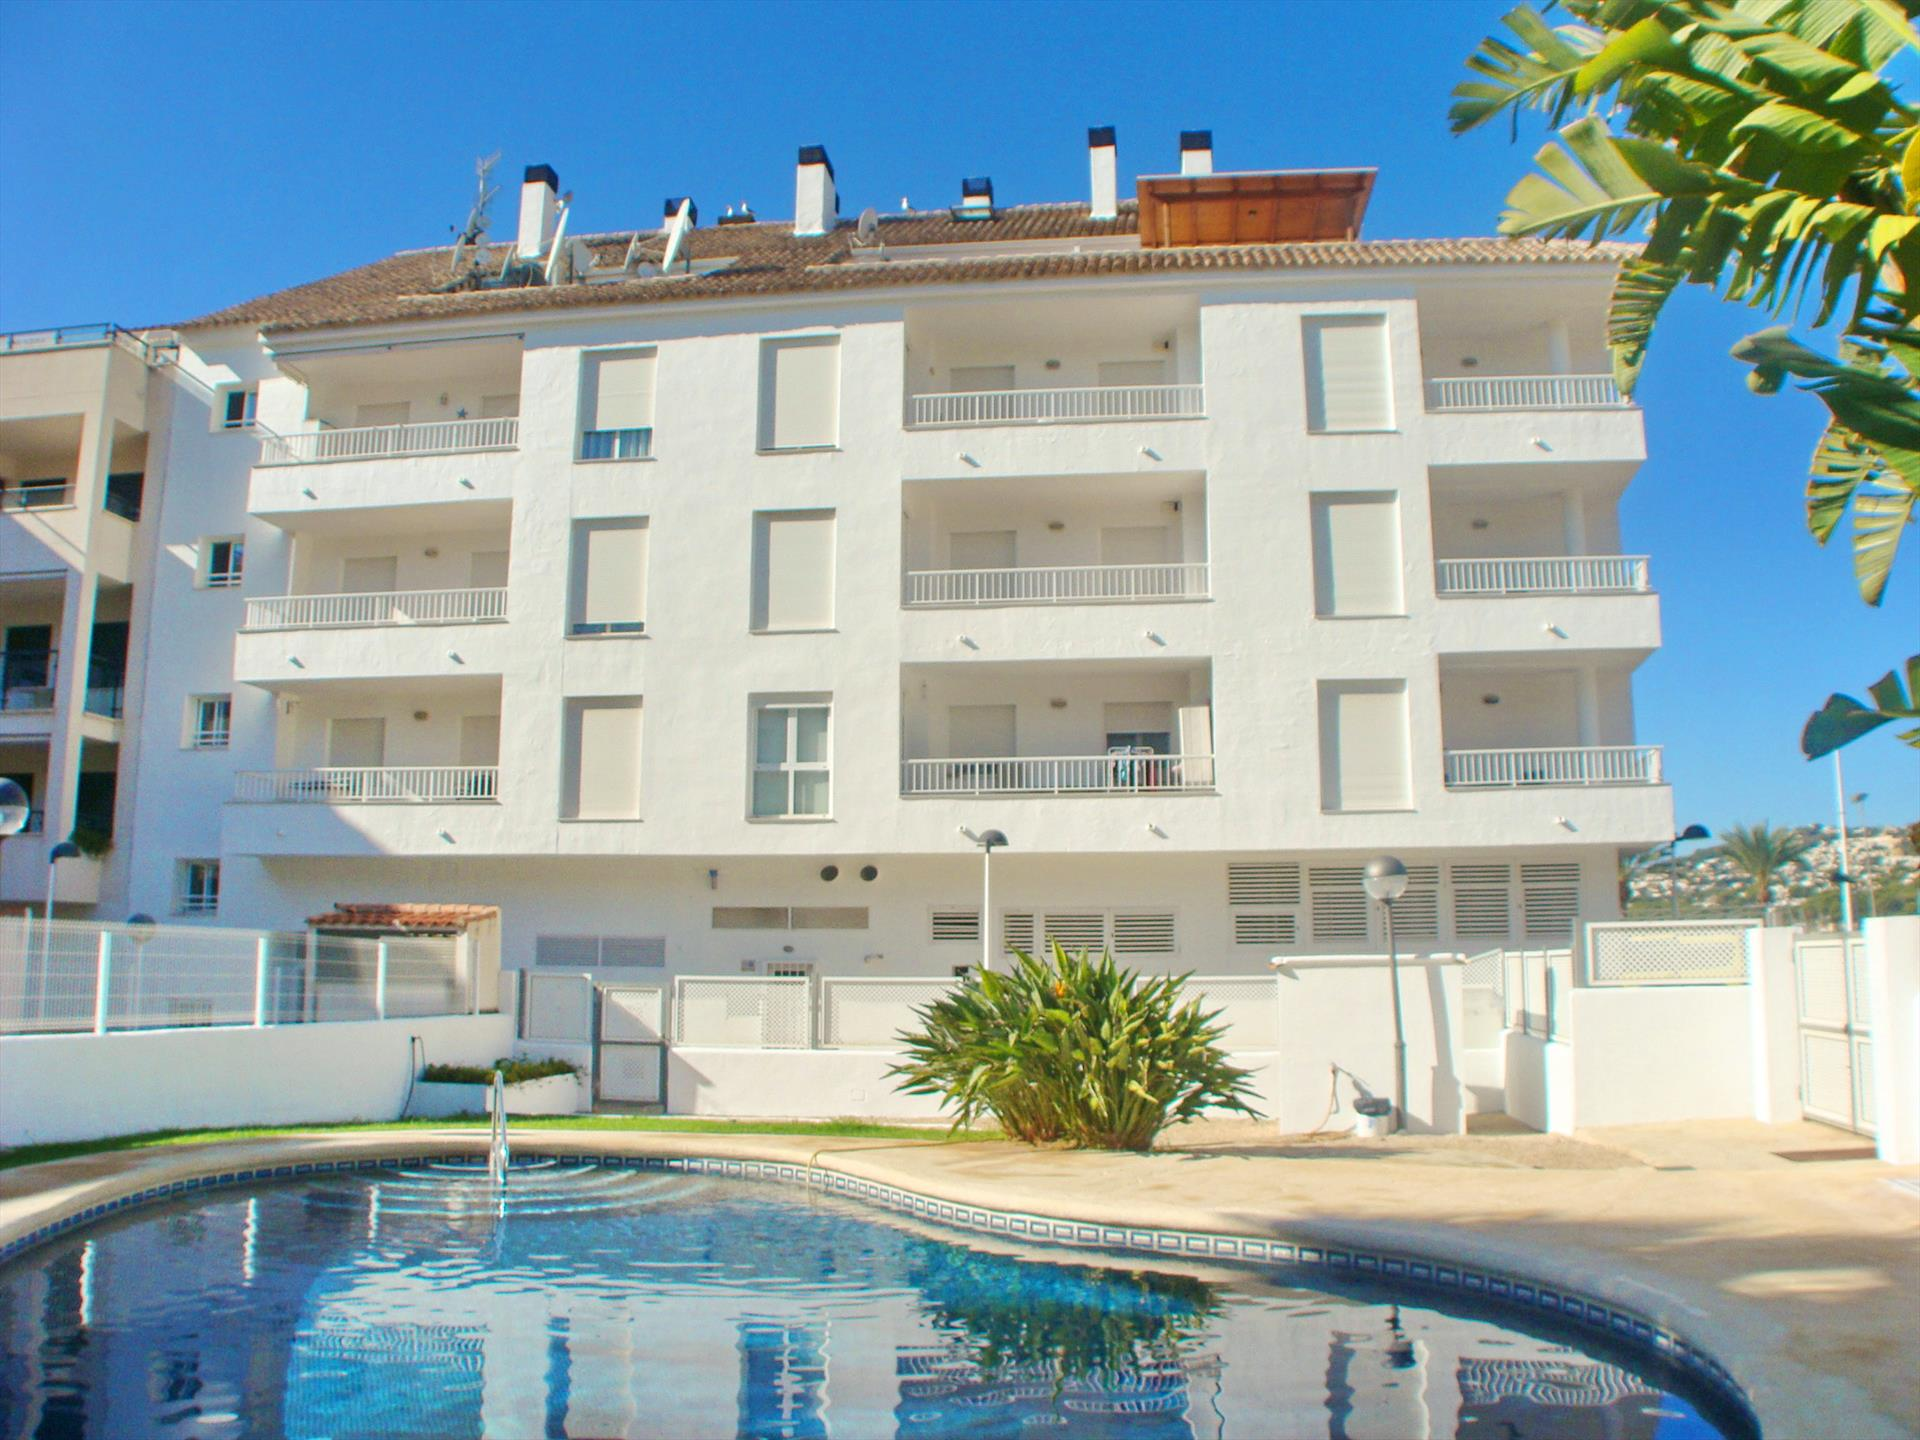 Sueño del Mar Solidays, Beautiful and cheerful apartment in Moraira, on the Costa Blanca, Spain  with communal pool for 4 persons.....